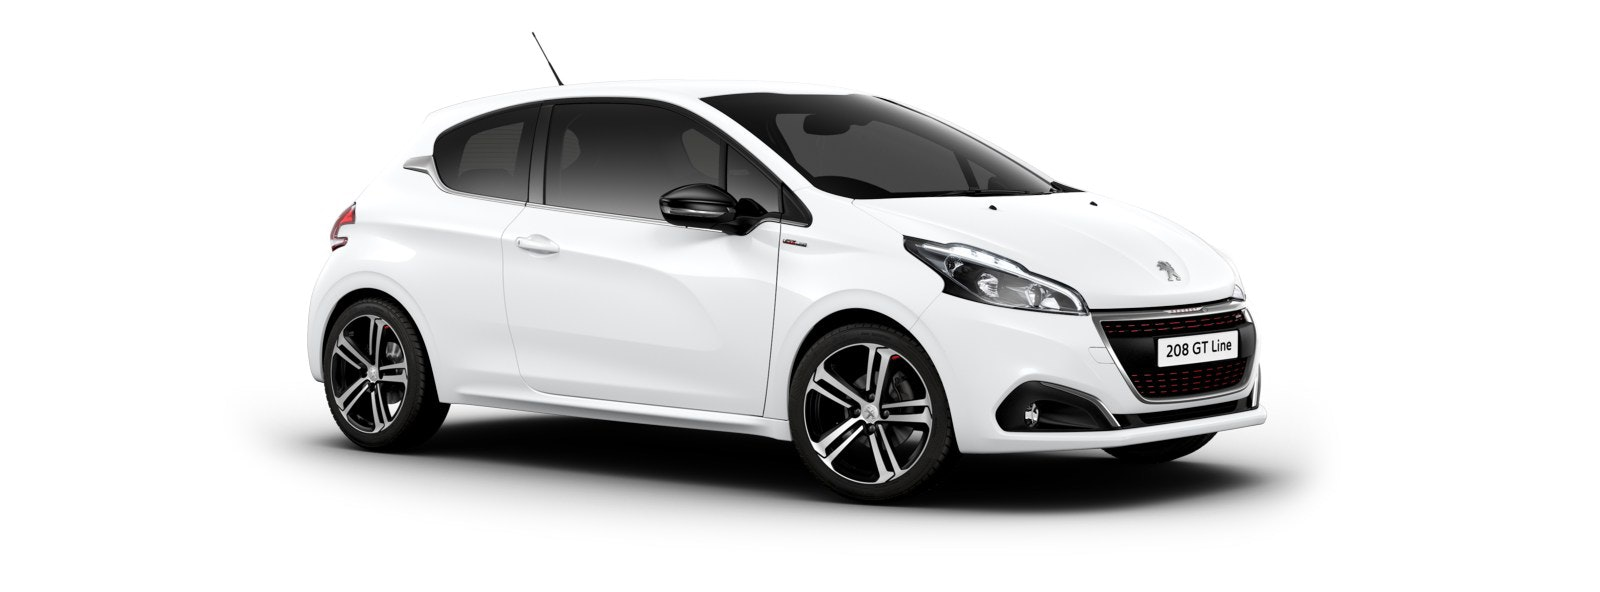 peugeot 208 colours guide and prices carwow rh carwow co uk peugeot service manual 307 peugeot service manual 308